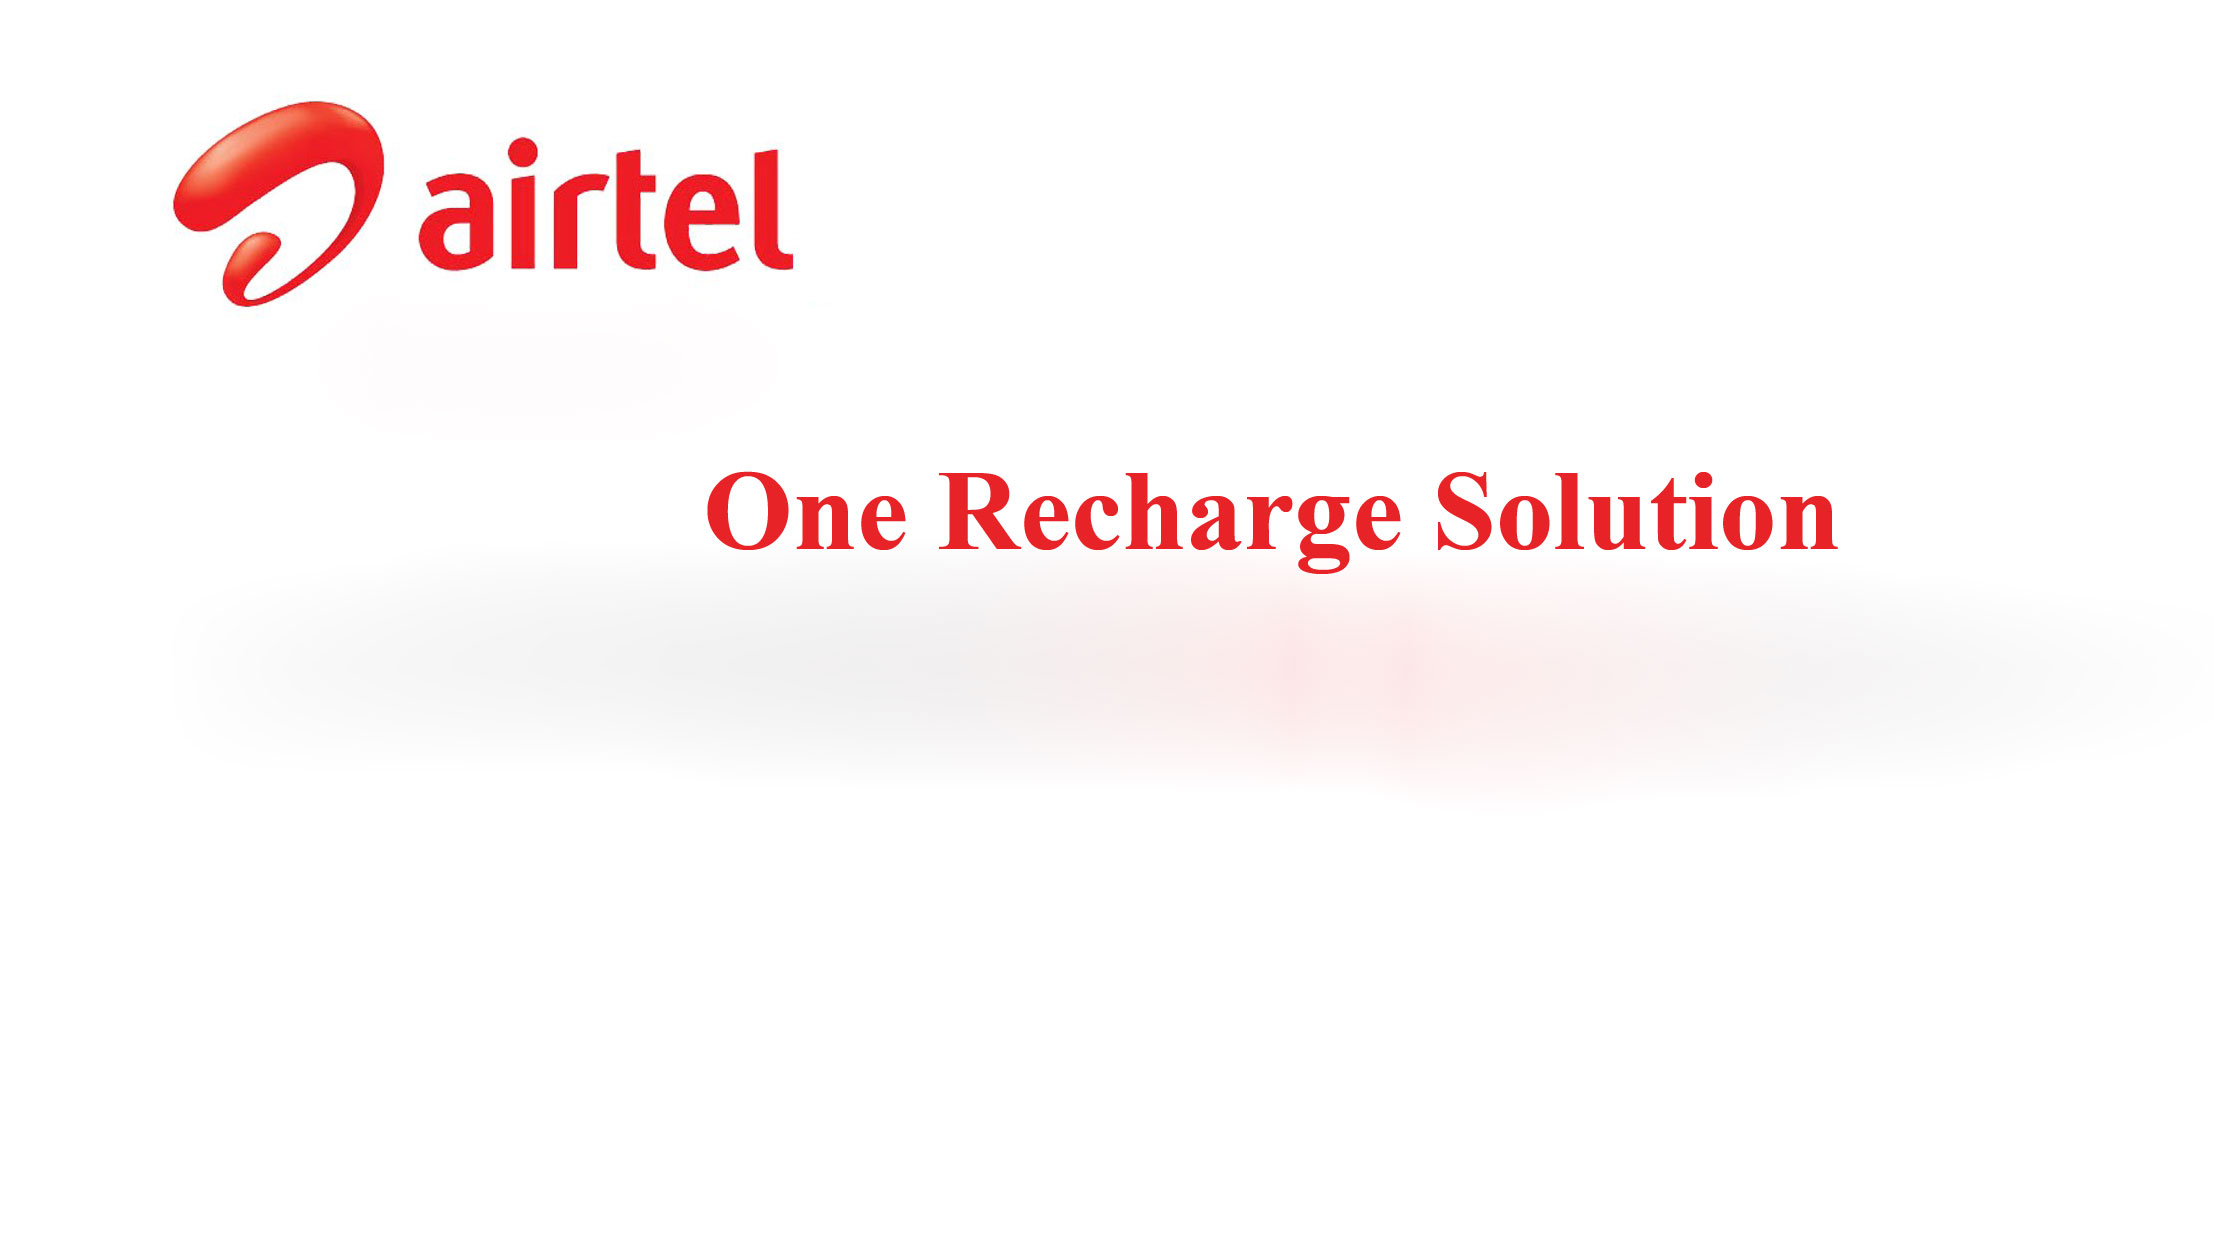 One Recharge Solution